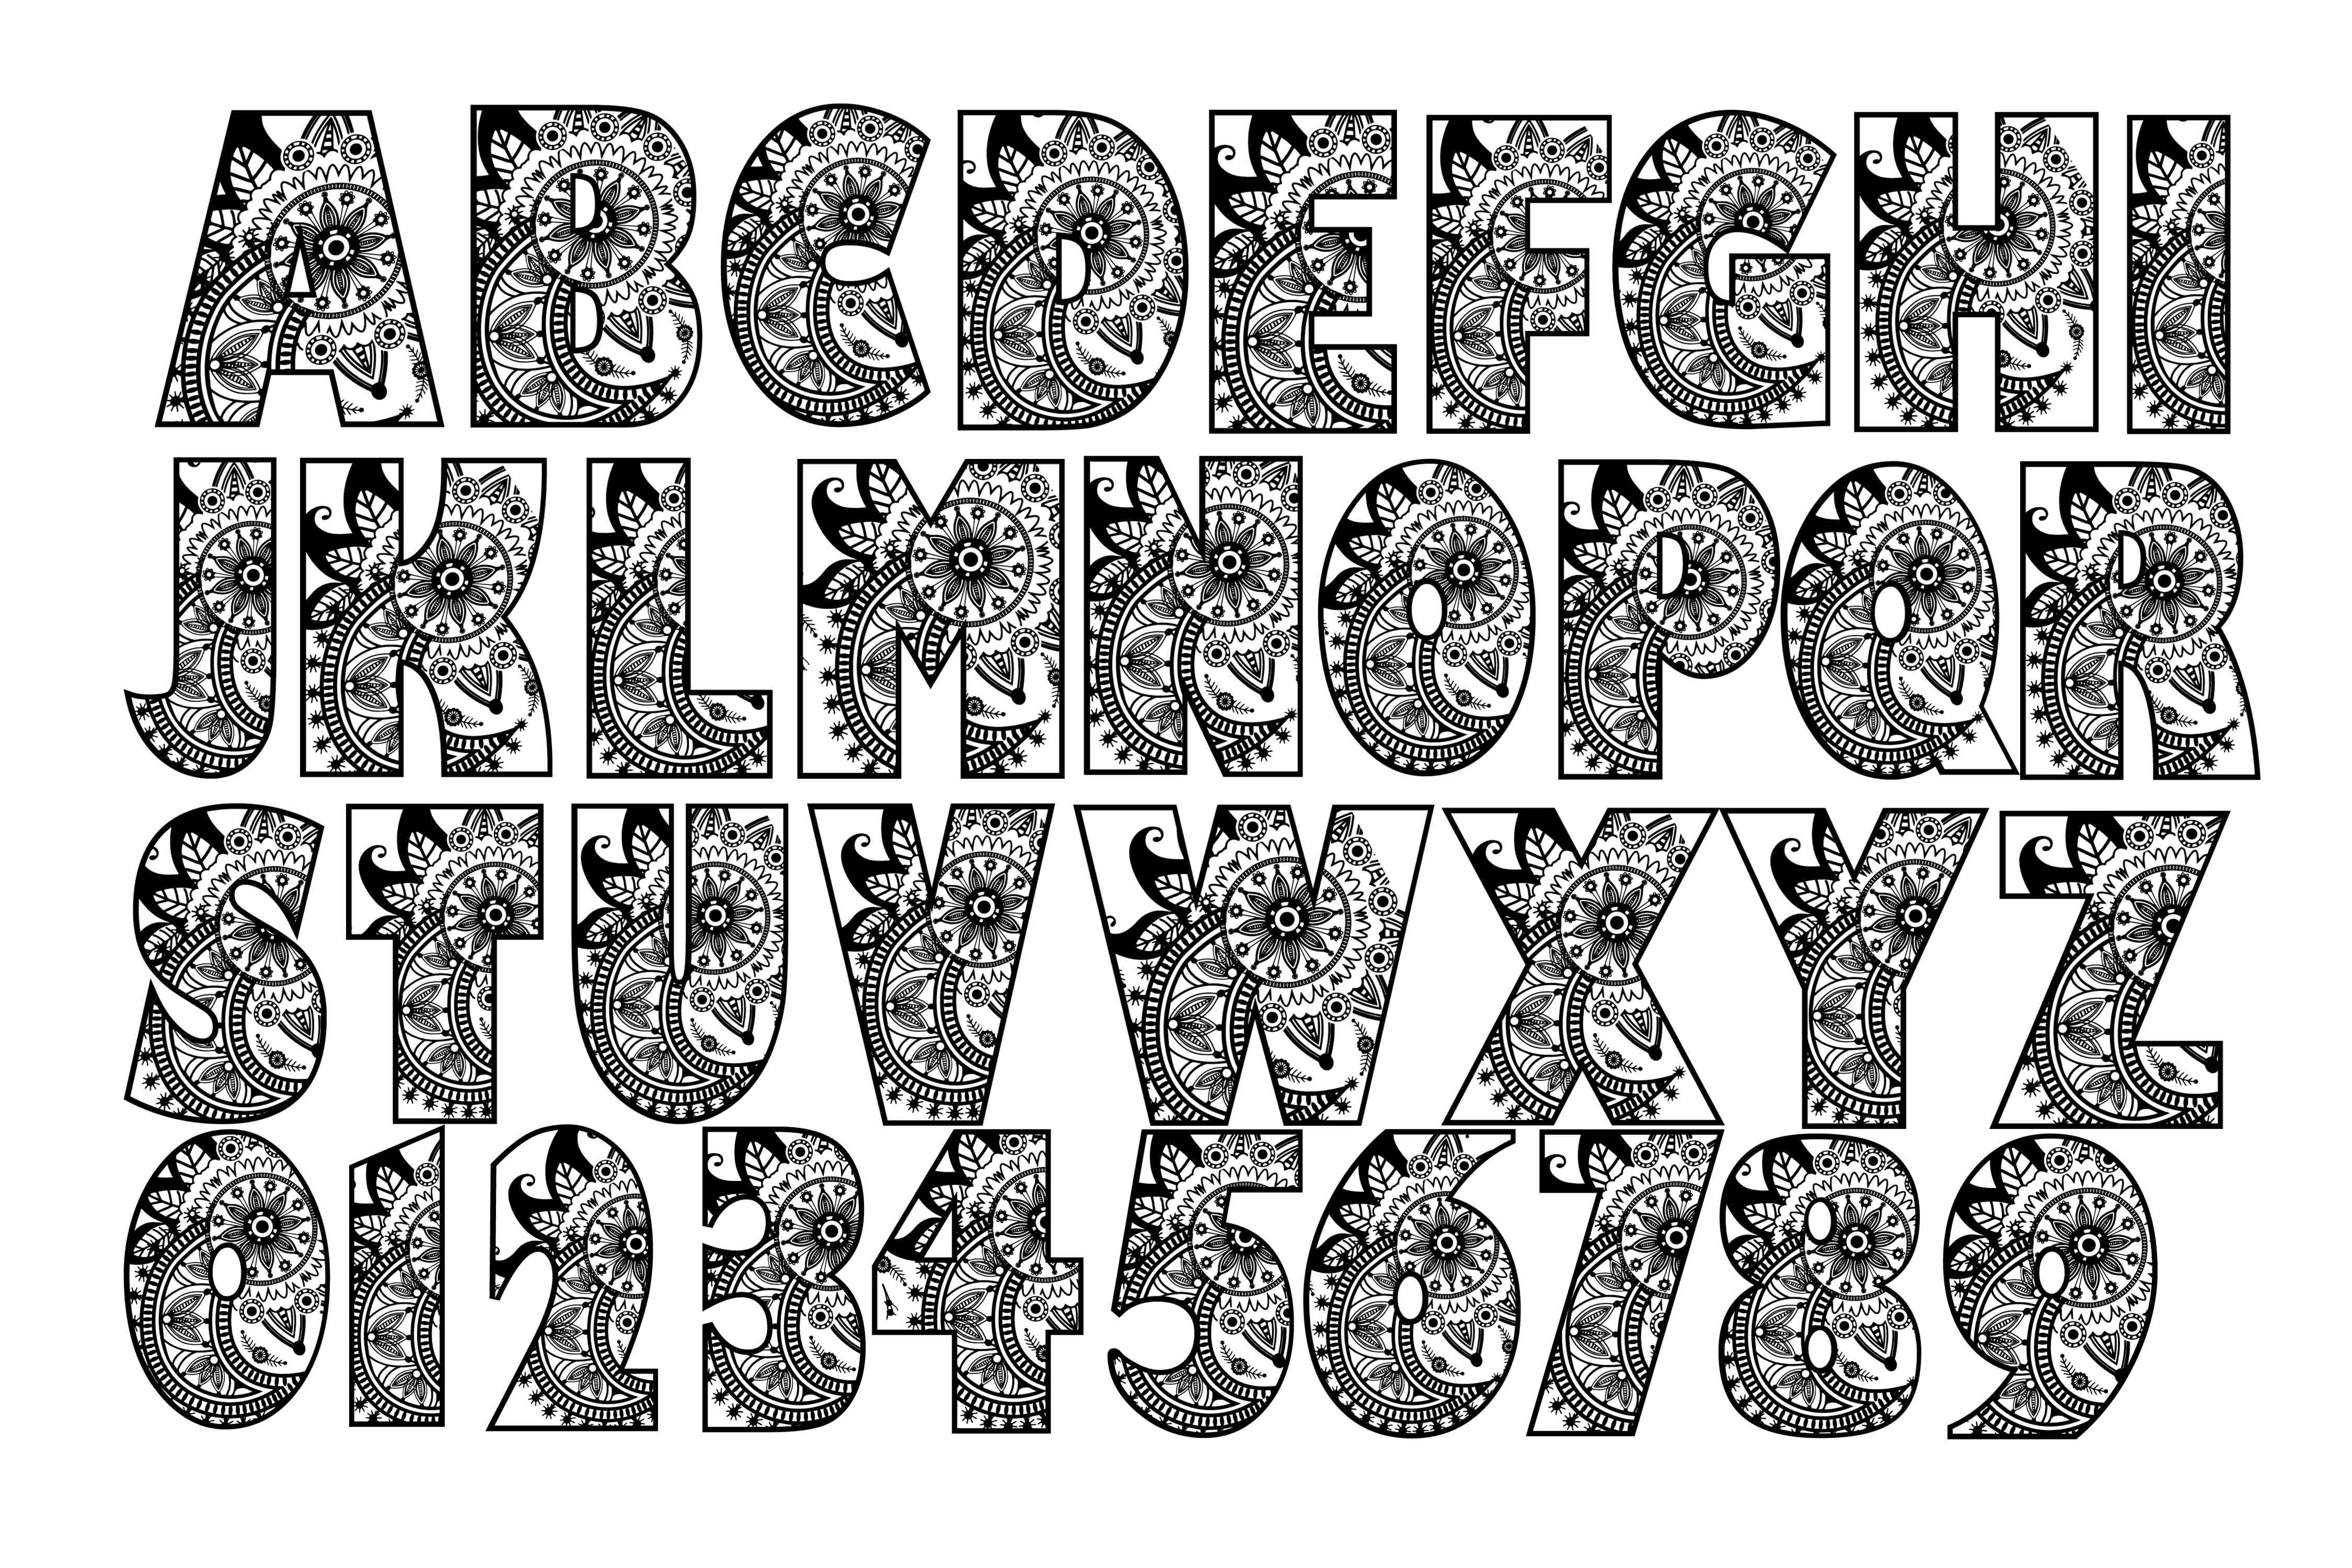 Mandala alphabet eps dxf svg png by twe design bundles mandala alphabet eps dxf svg png example image 1 thecheapjerseys Image collections